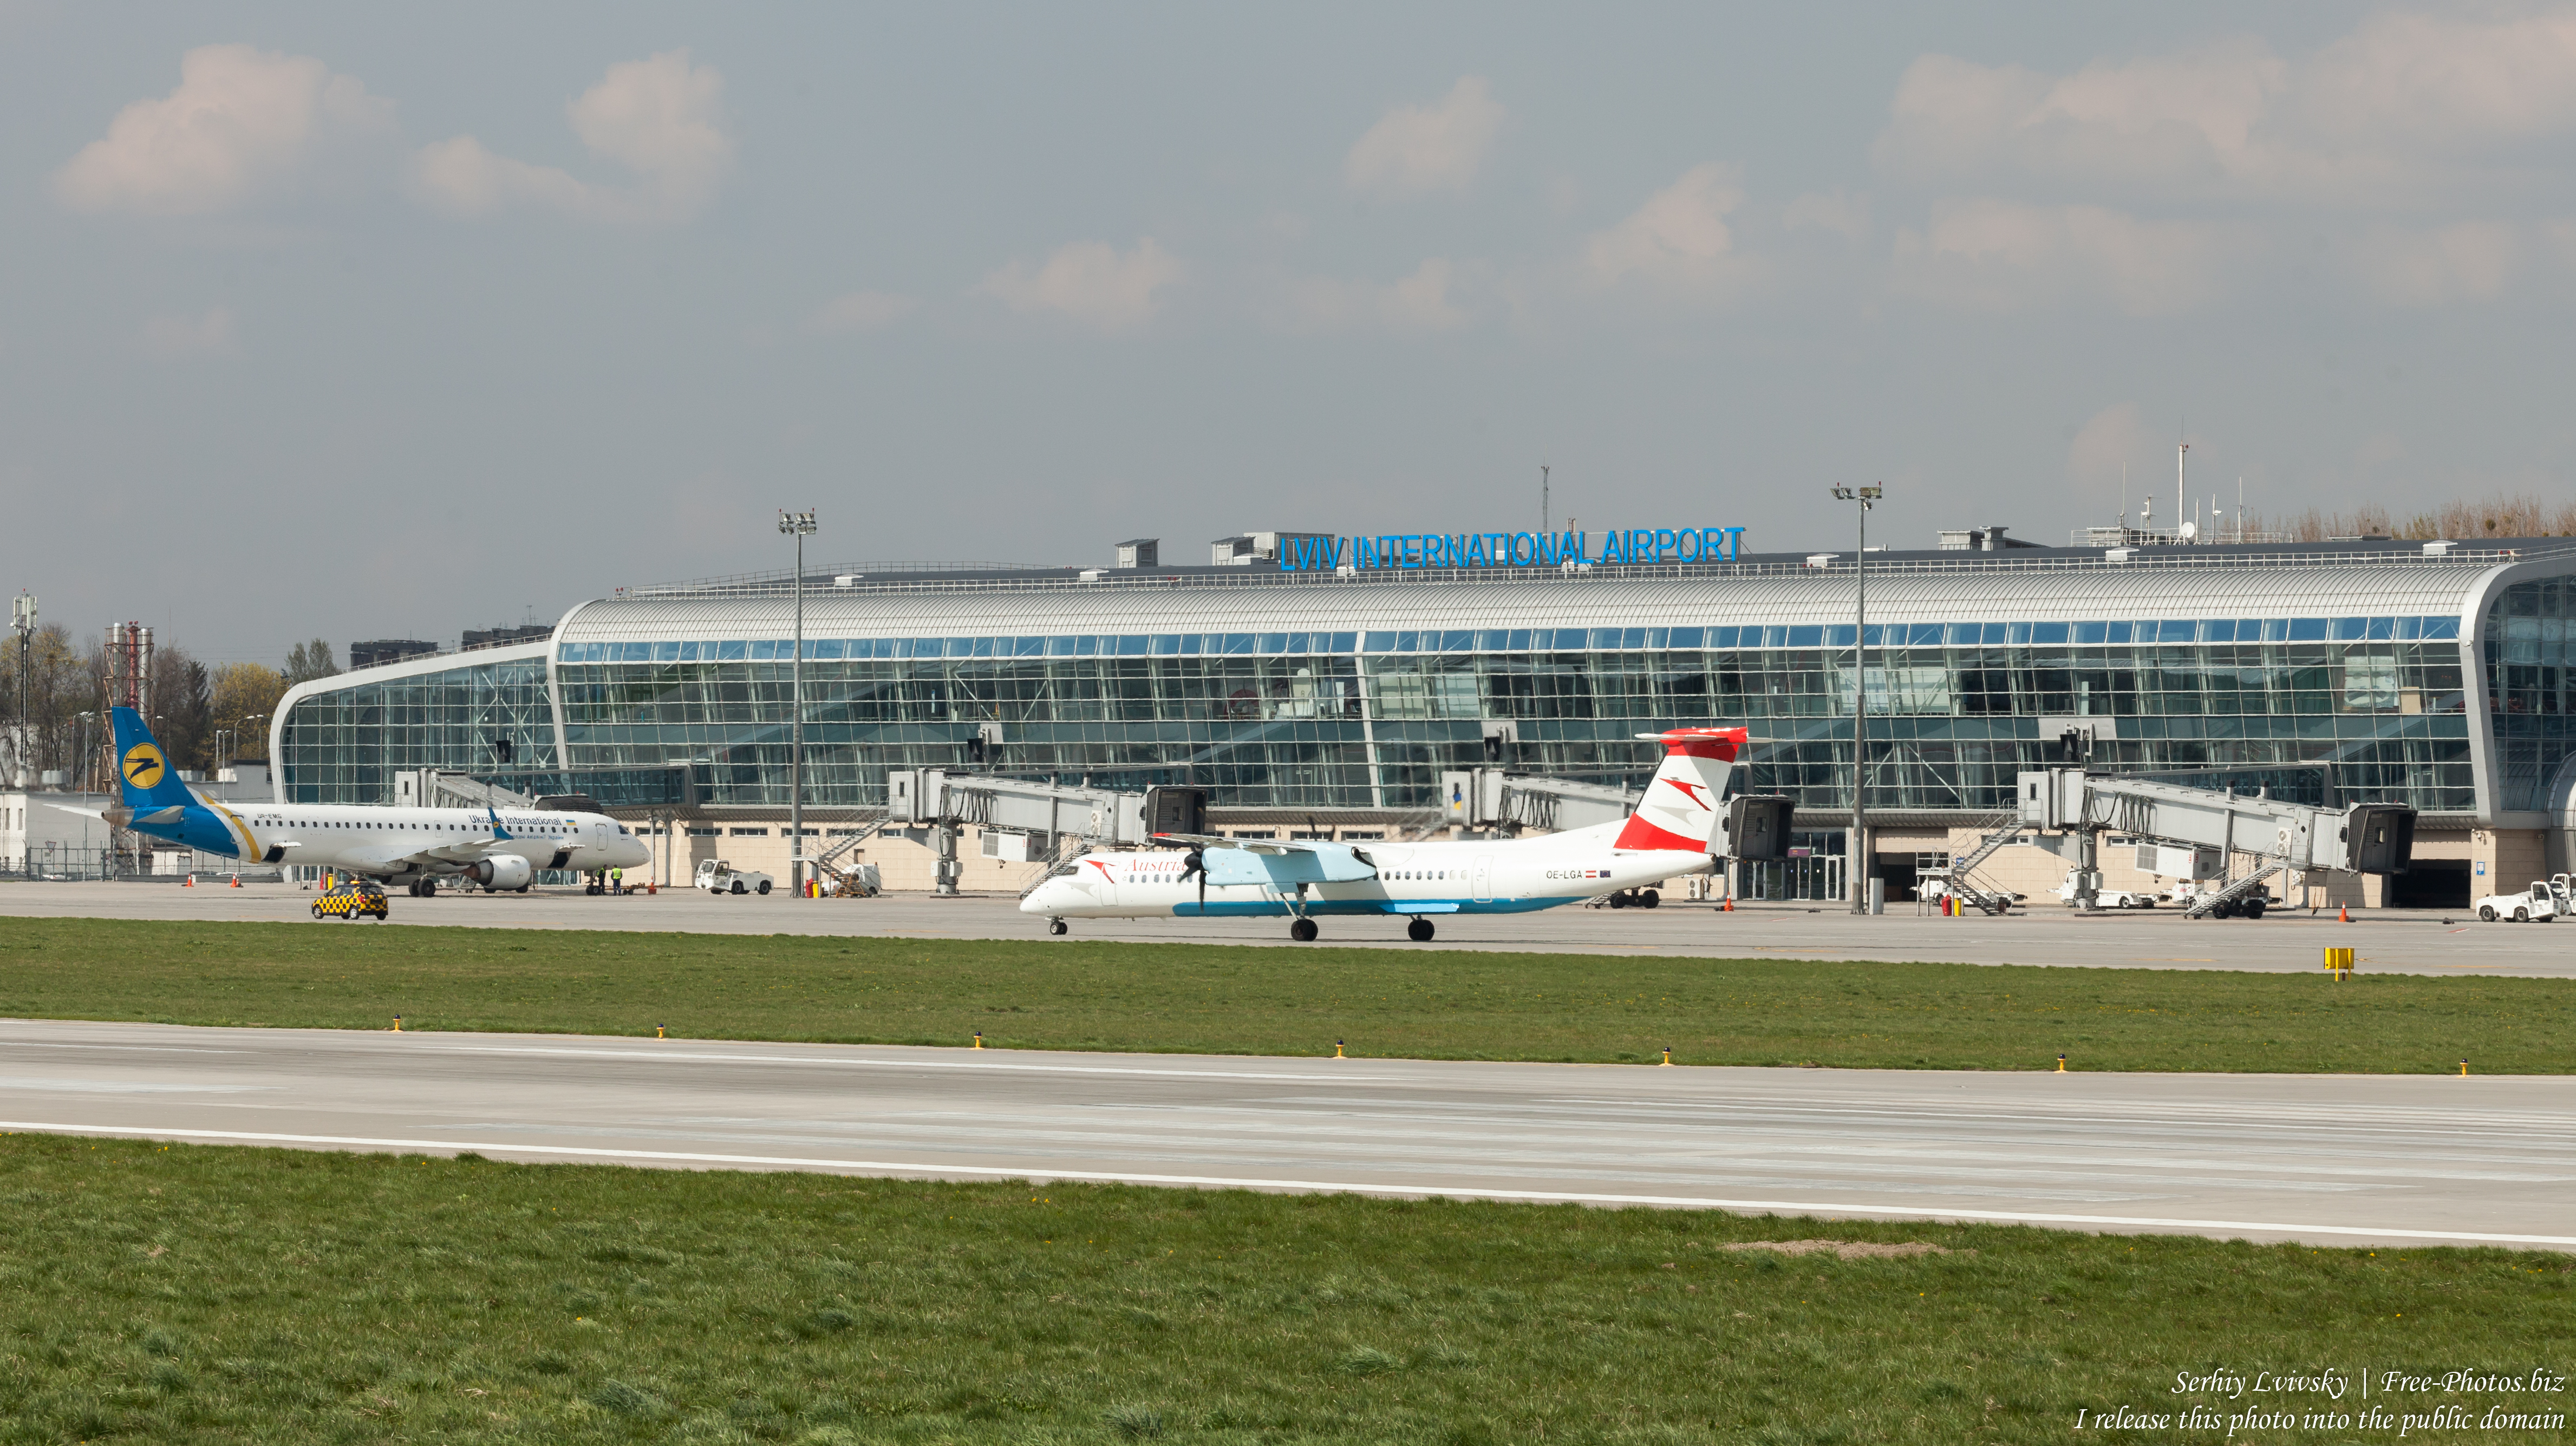 Lviv airport photographed in April 2019 by Serhiy Lvivsky, picture 12